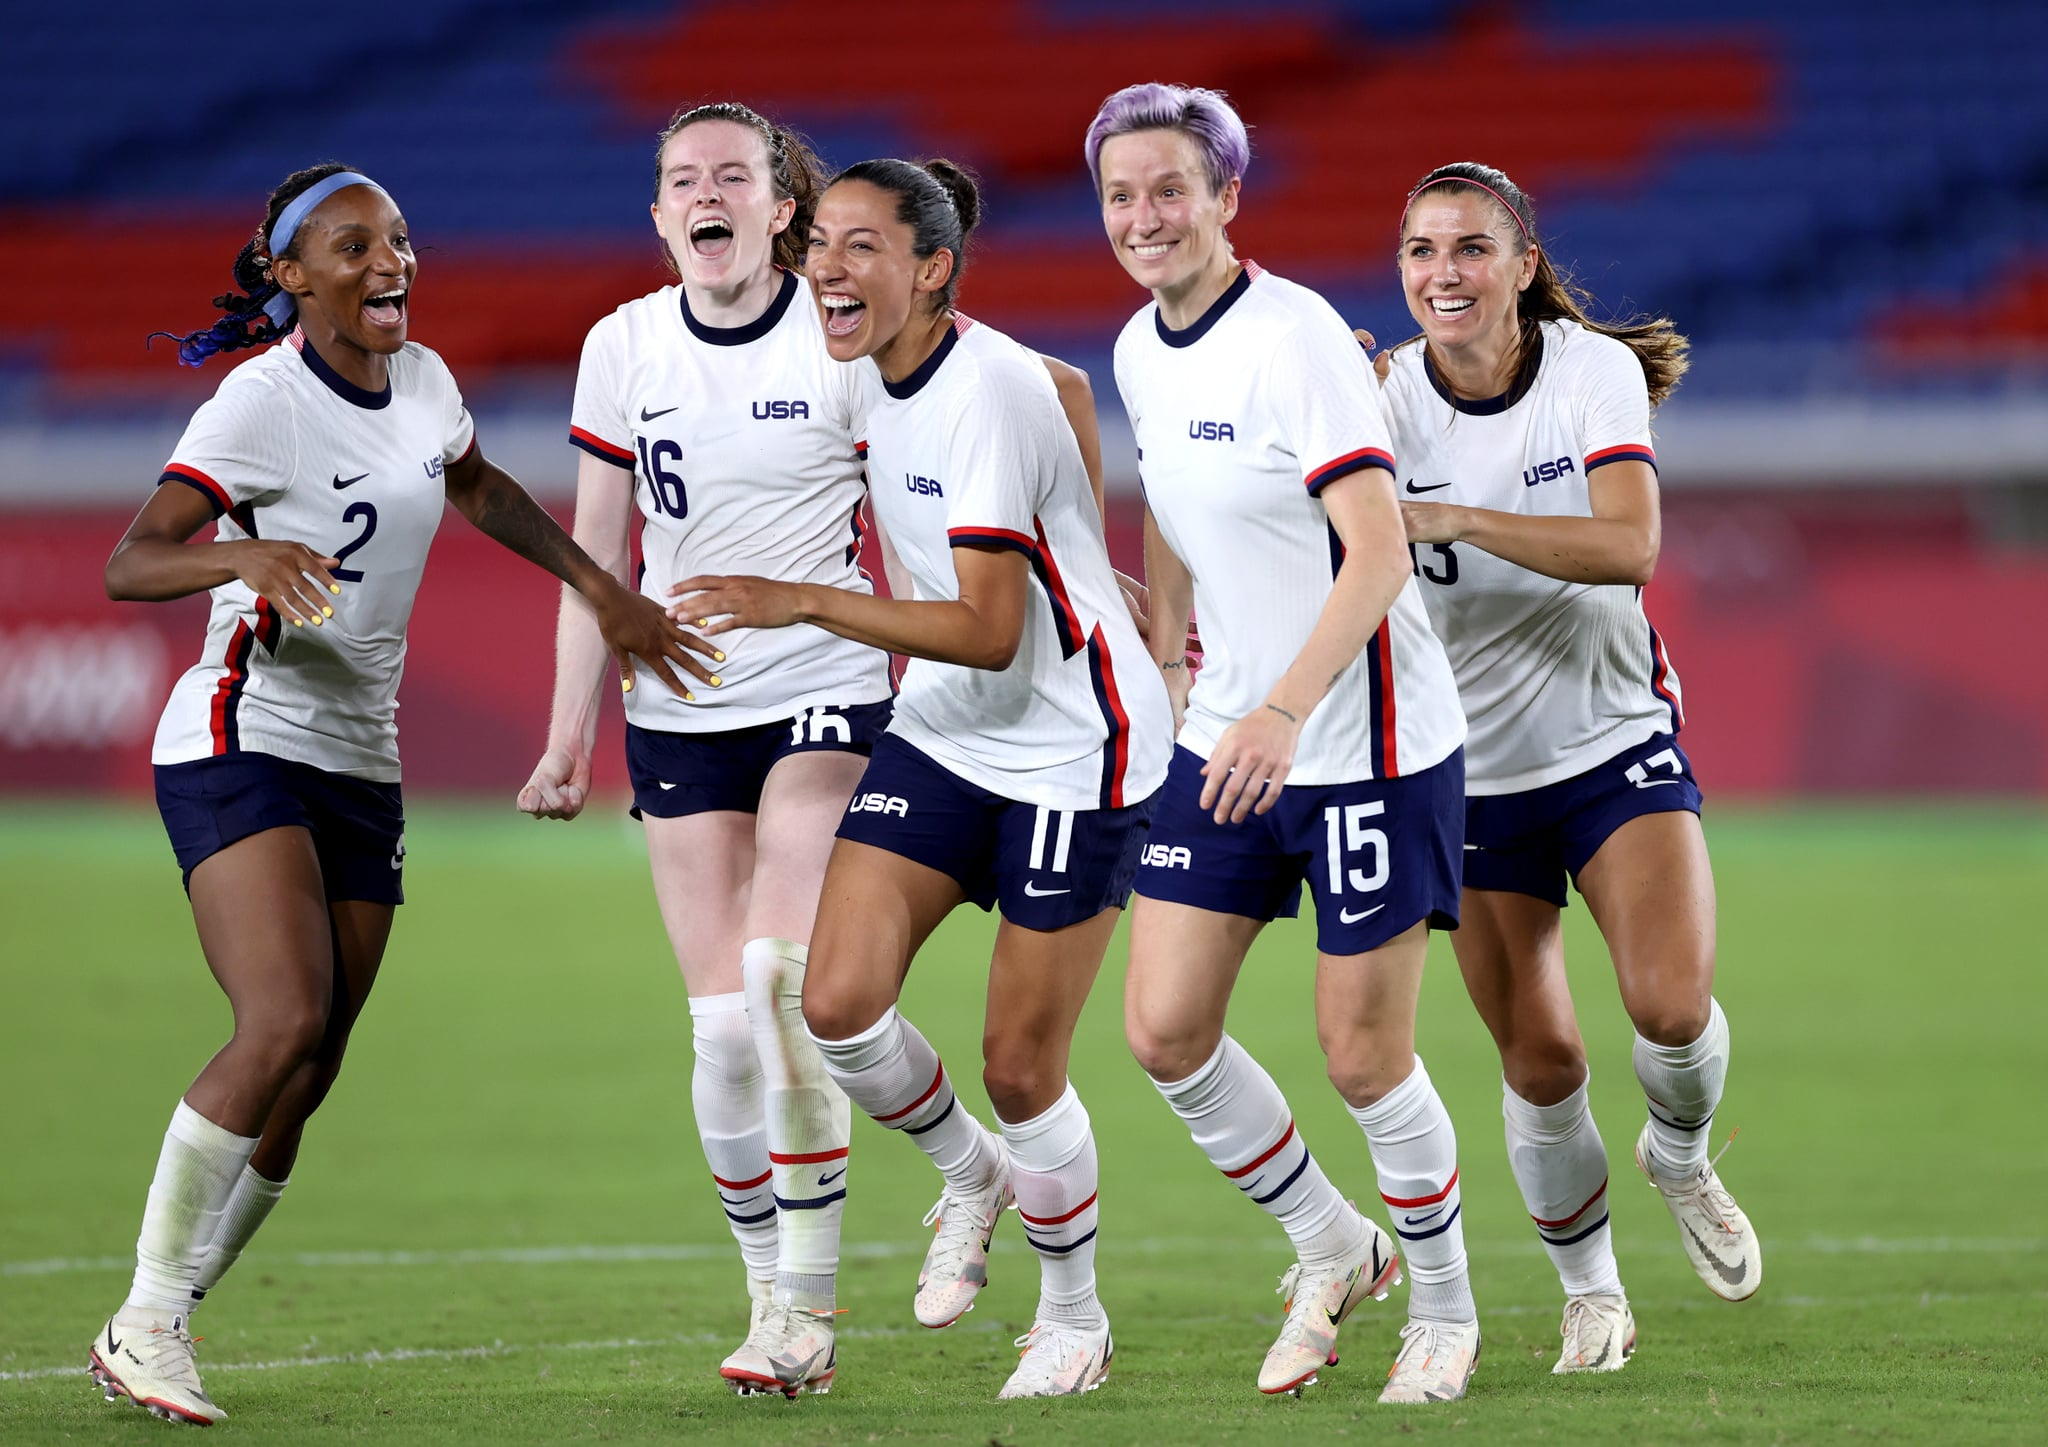 YOKOHAMA, JAPAN - JULY 30: Crystal Dunn #2, Rose Lavelle #16, Christen Press #11, Megan Rapinoe #15 and Alex Morgan #13 of Team United States celebrate following their team's victory in the penalty shoot out after the Women's Quarter Final match between Netherlands and United States on day seven of the Tokyo 2020 Olympic Games at International Stadium Yokohama on July 30, 2021 in Yokohama, Kanagawa, Japan. (Photo by Laurence Griffiths/Getty Images)